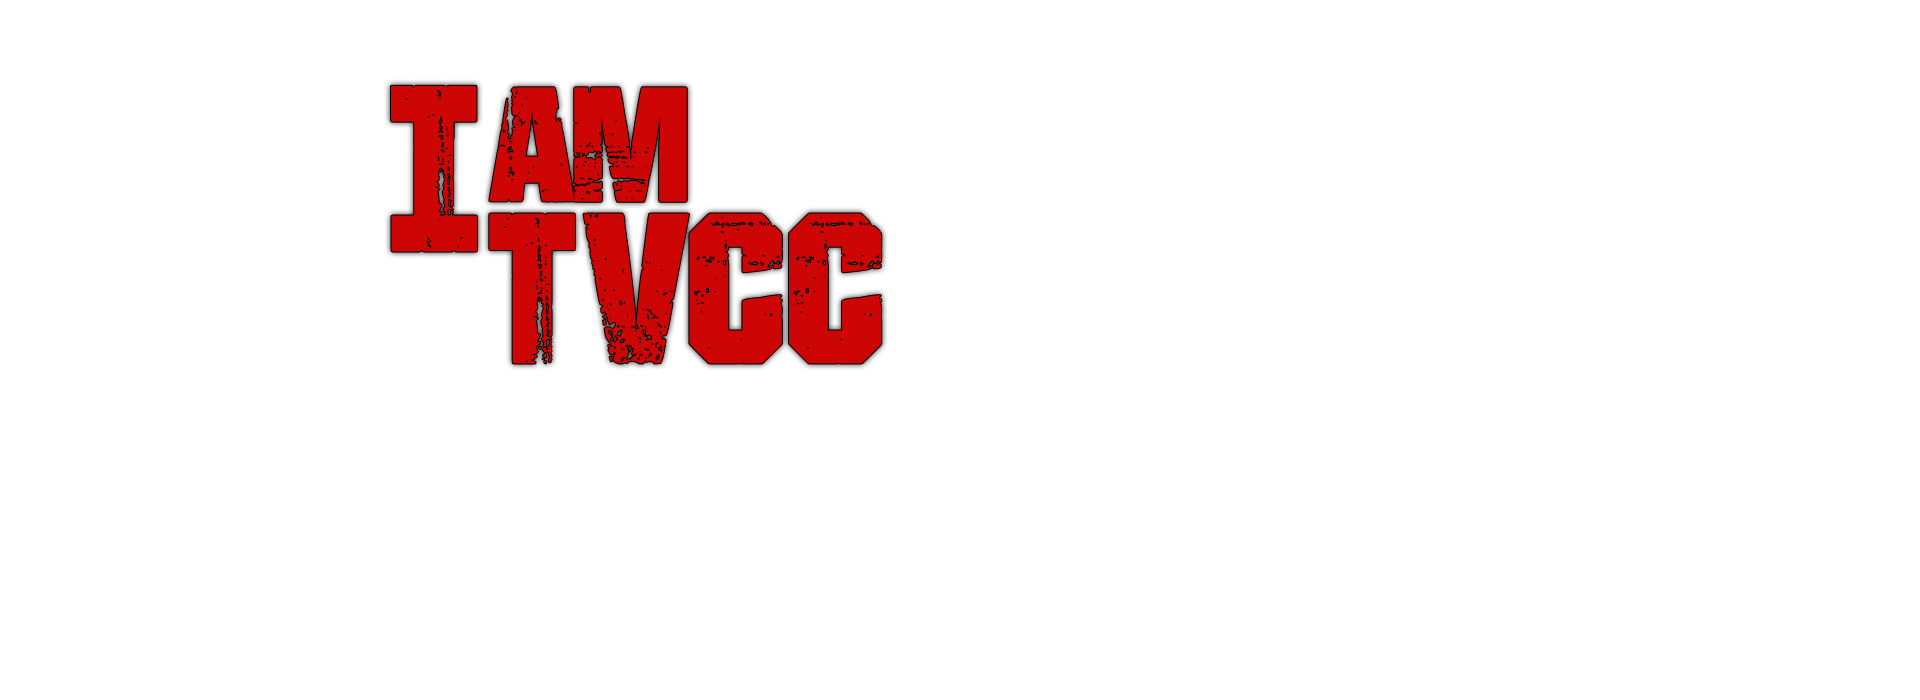 I AM TVCC logo